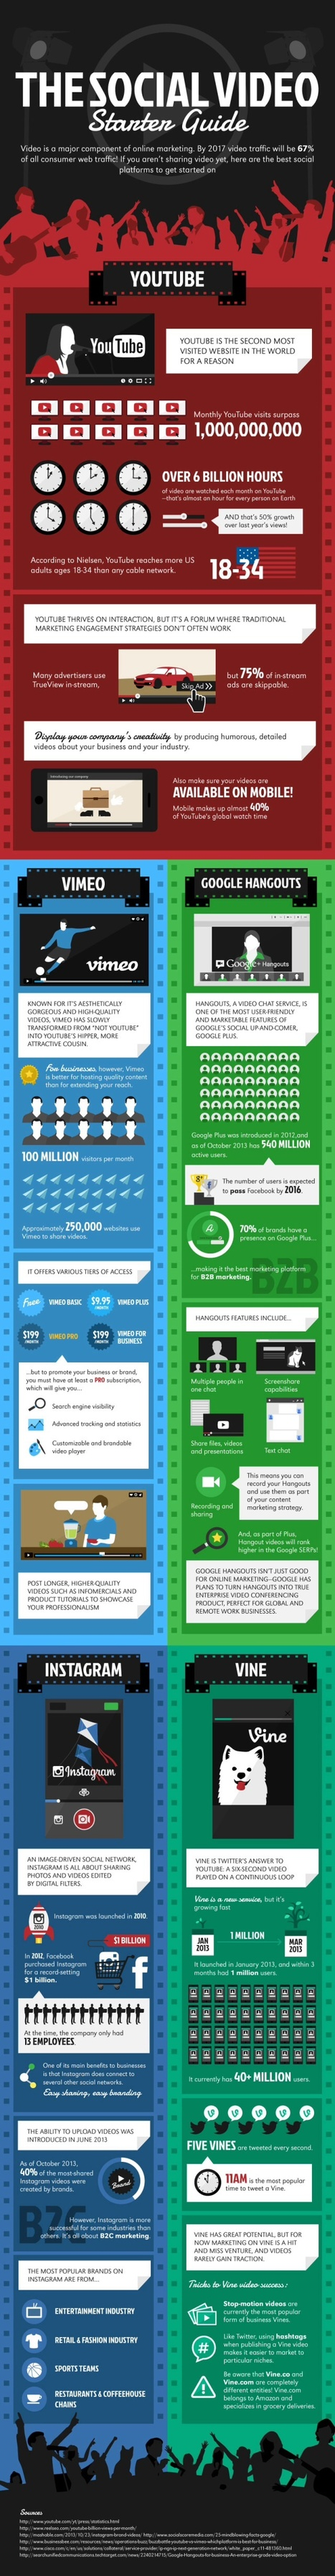 Is Your Business Taking Advantage of Social Video? #infographic   MarketingHits   Scoop.it